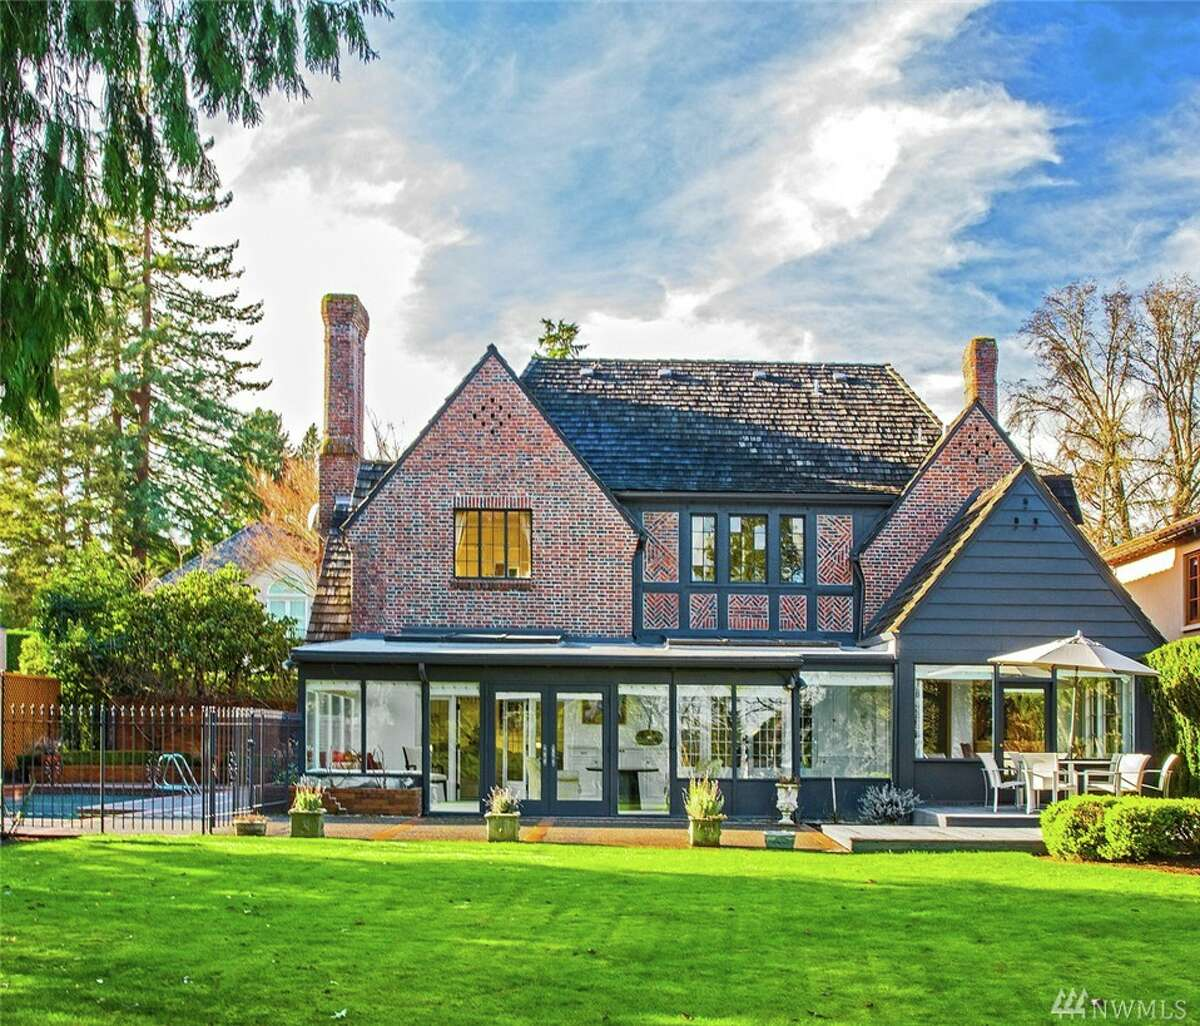 This home at 1818 Broadmoor Drive E. is listed for $3.77 million. The five bedroom, 3.5 Tudor-style home was built in 1929 and designed by Seattle architect William Bain. The home features a pool and a sun-room with views of the Broadmoor Golf Club. You can see the full listing here.